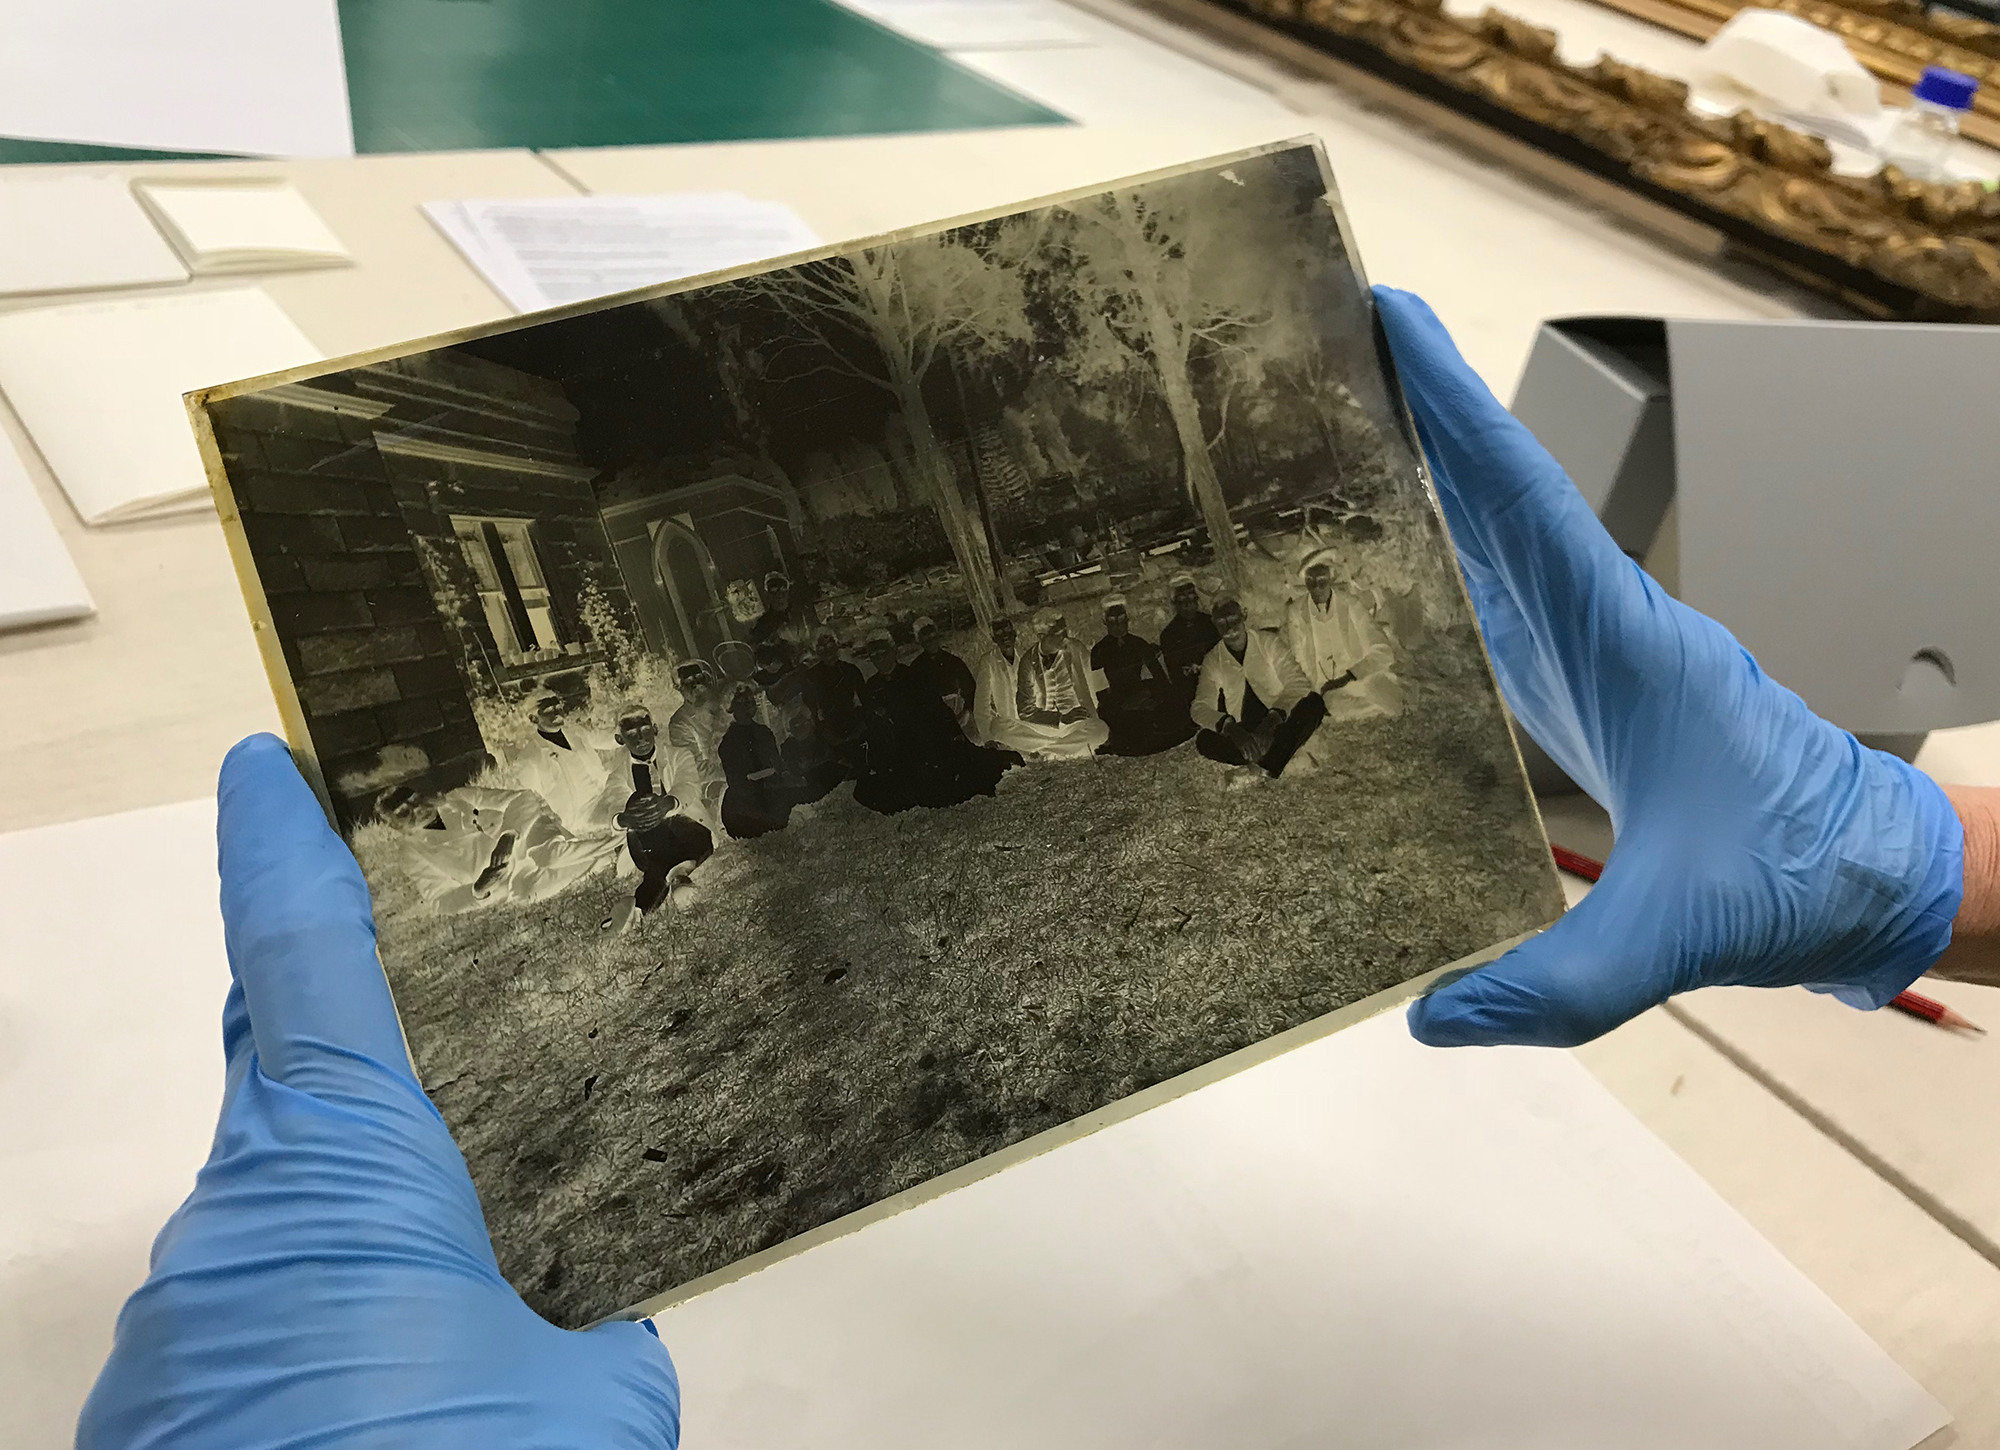 Photograph of blue latex gloved hands, holding a glass plate negative.